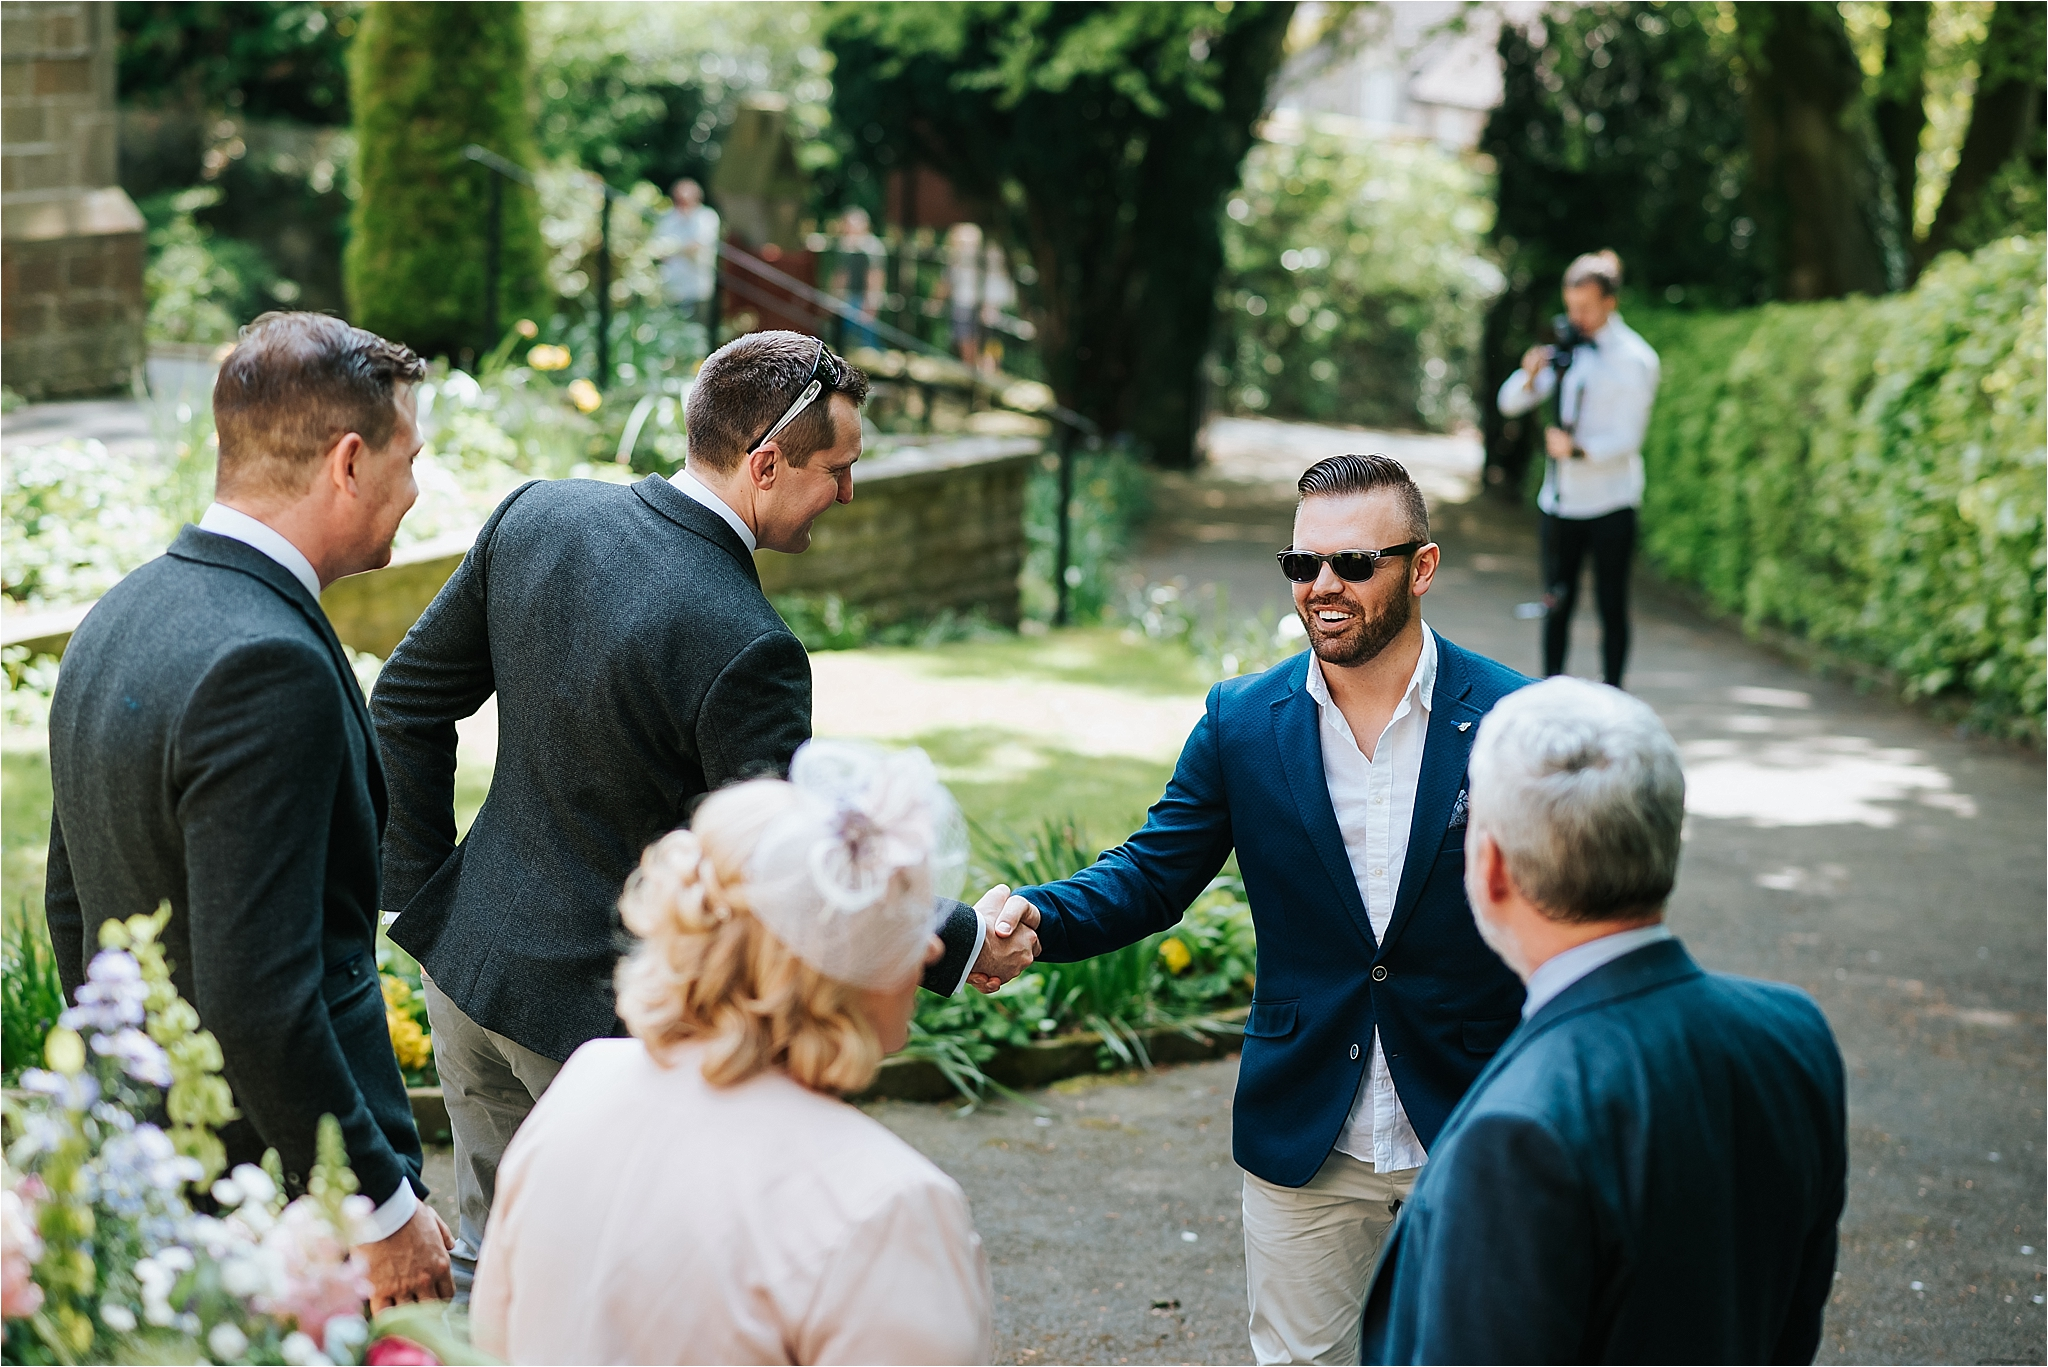 guests arrive at church for wedding